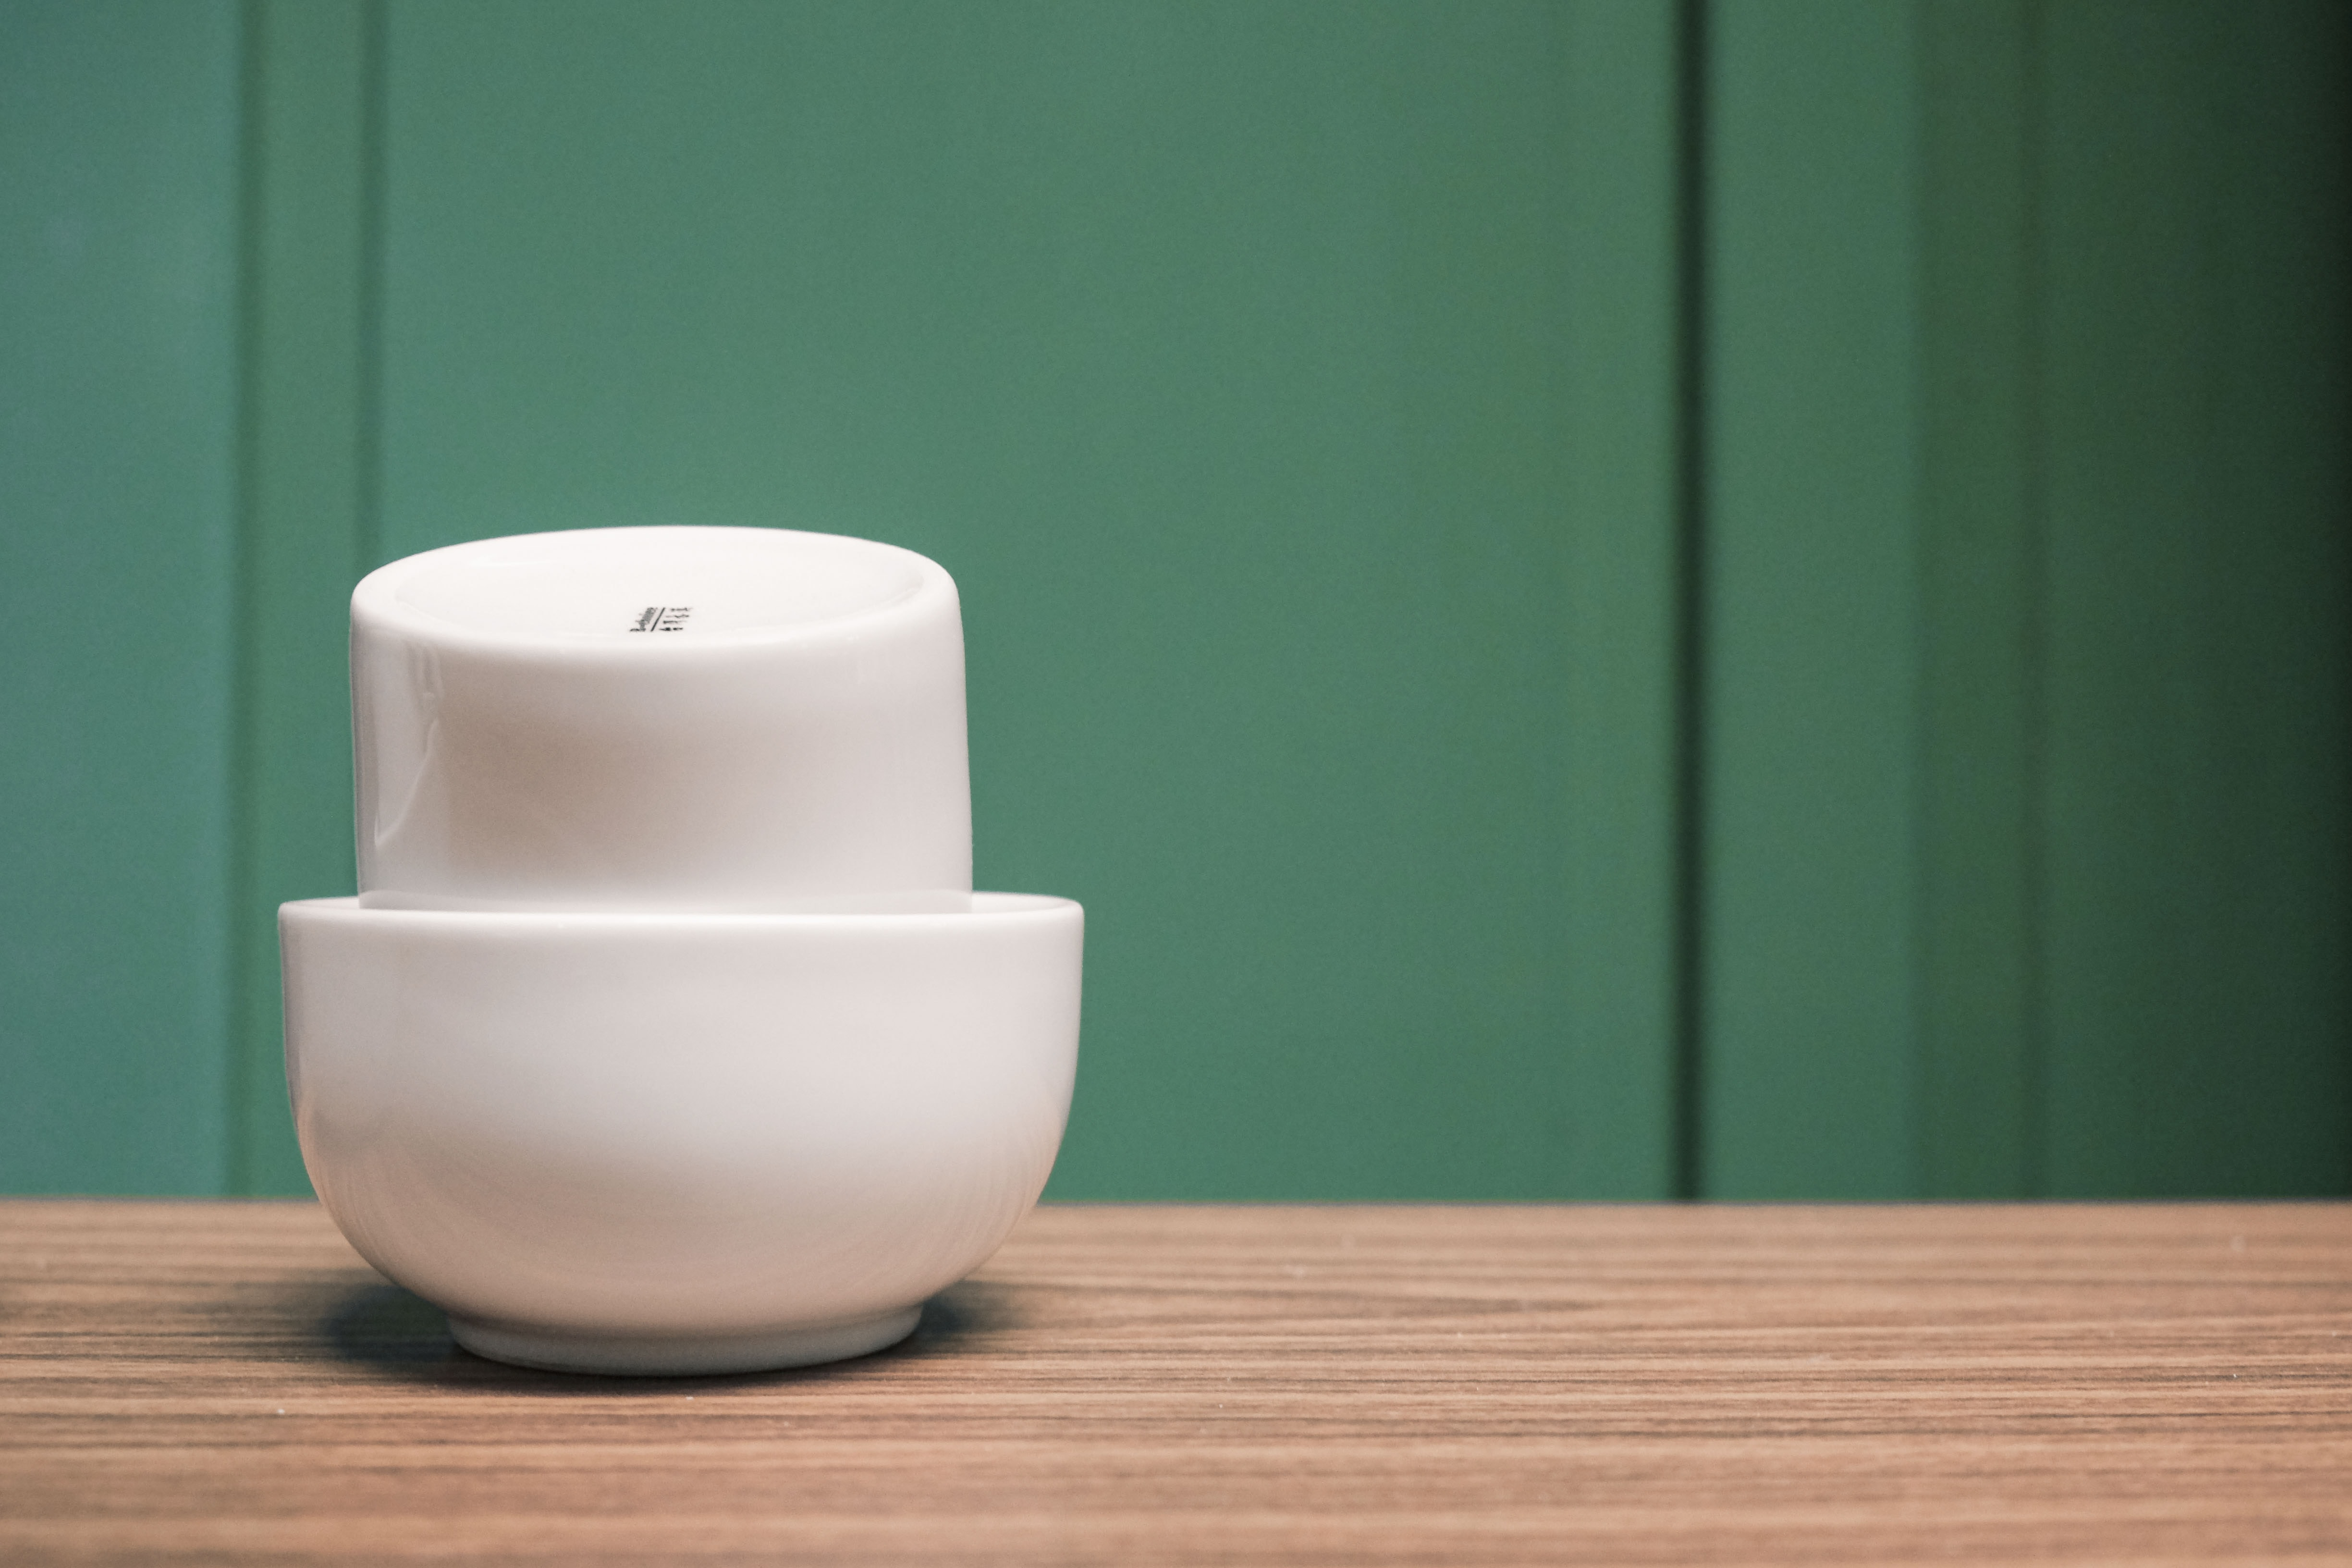 two white bowls on table